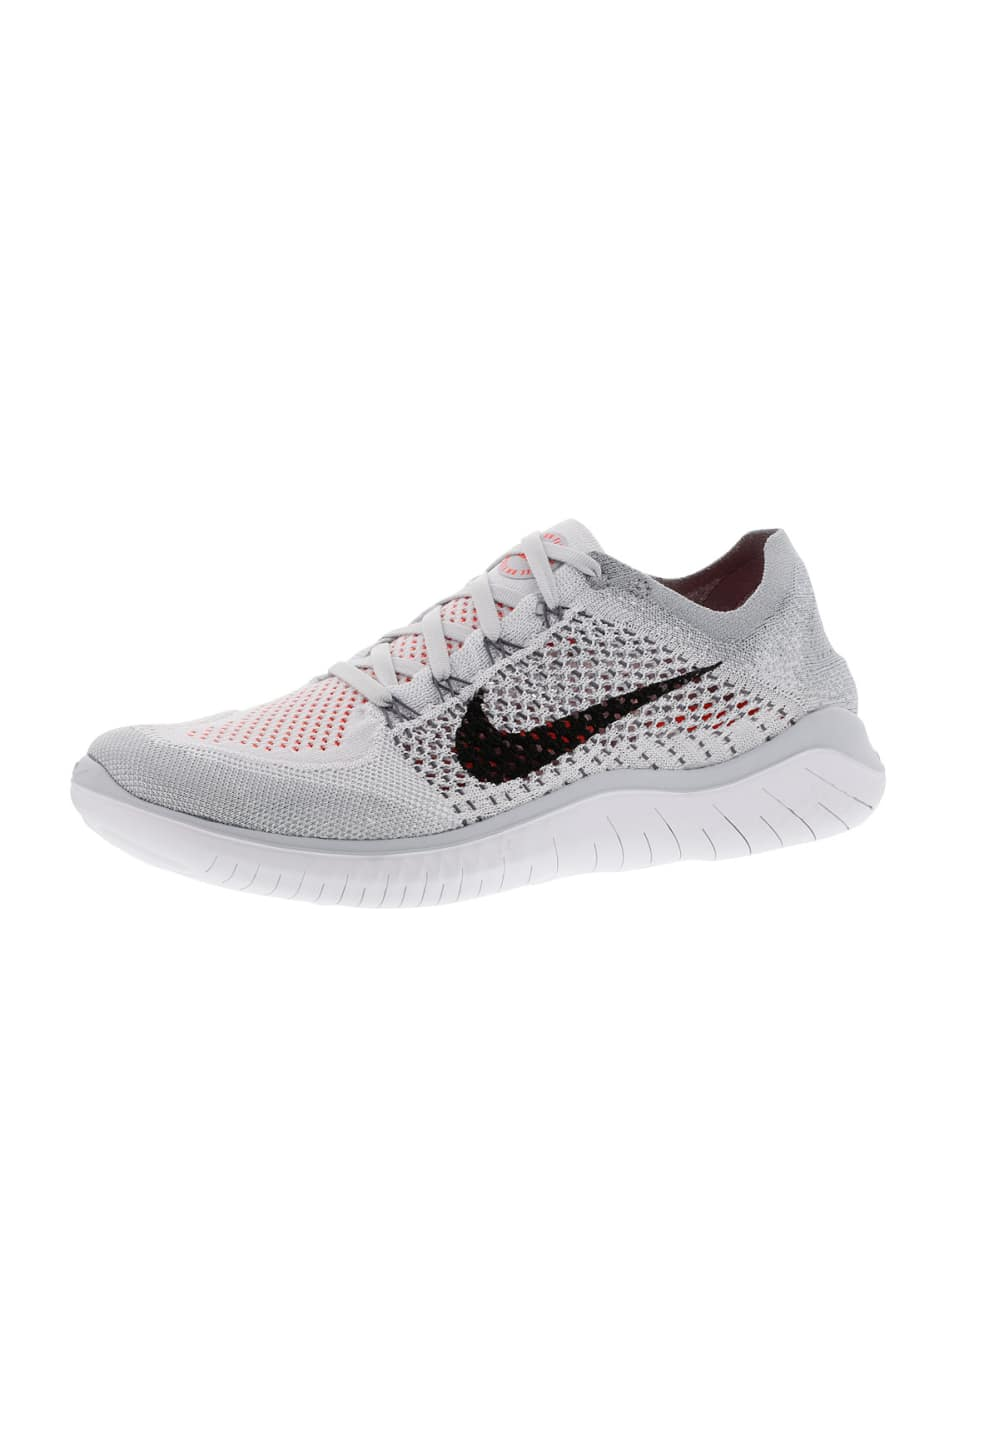 watch d0814 e43c0 Nike FREE RN FLYKNIT 2018 - Running shoes for Men - Grey